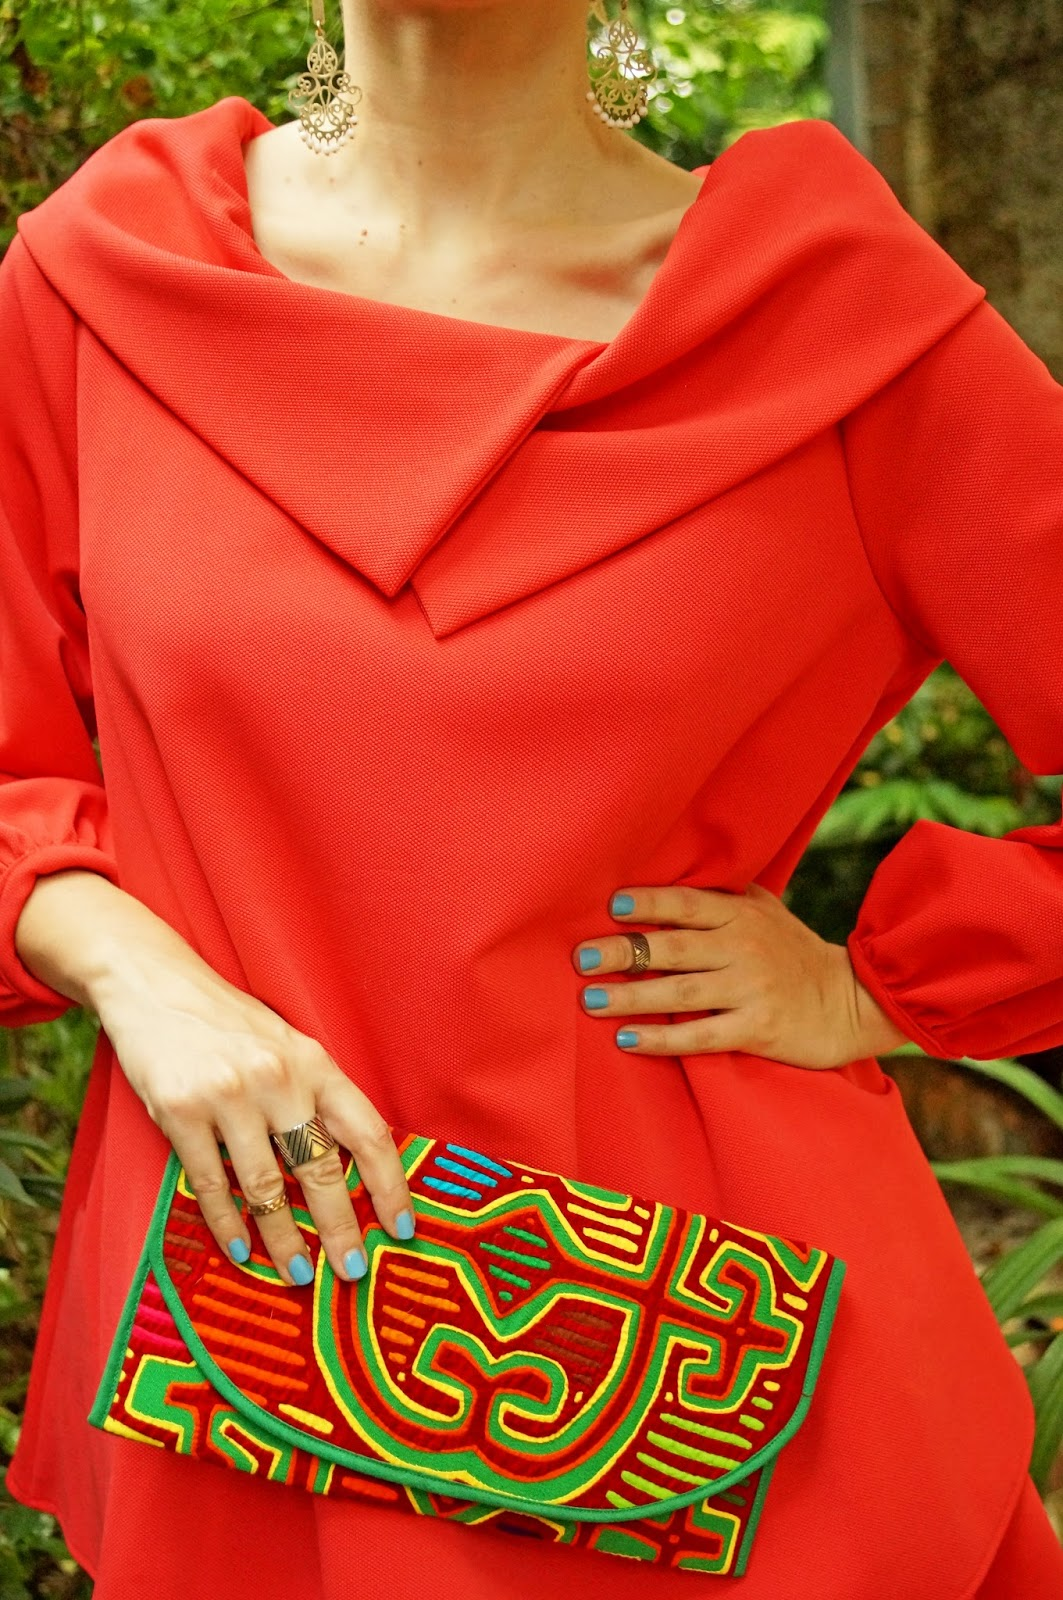 The colors of this mola clutch by K'Lasso Collection are stunning! Love me some Panama culture!